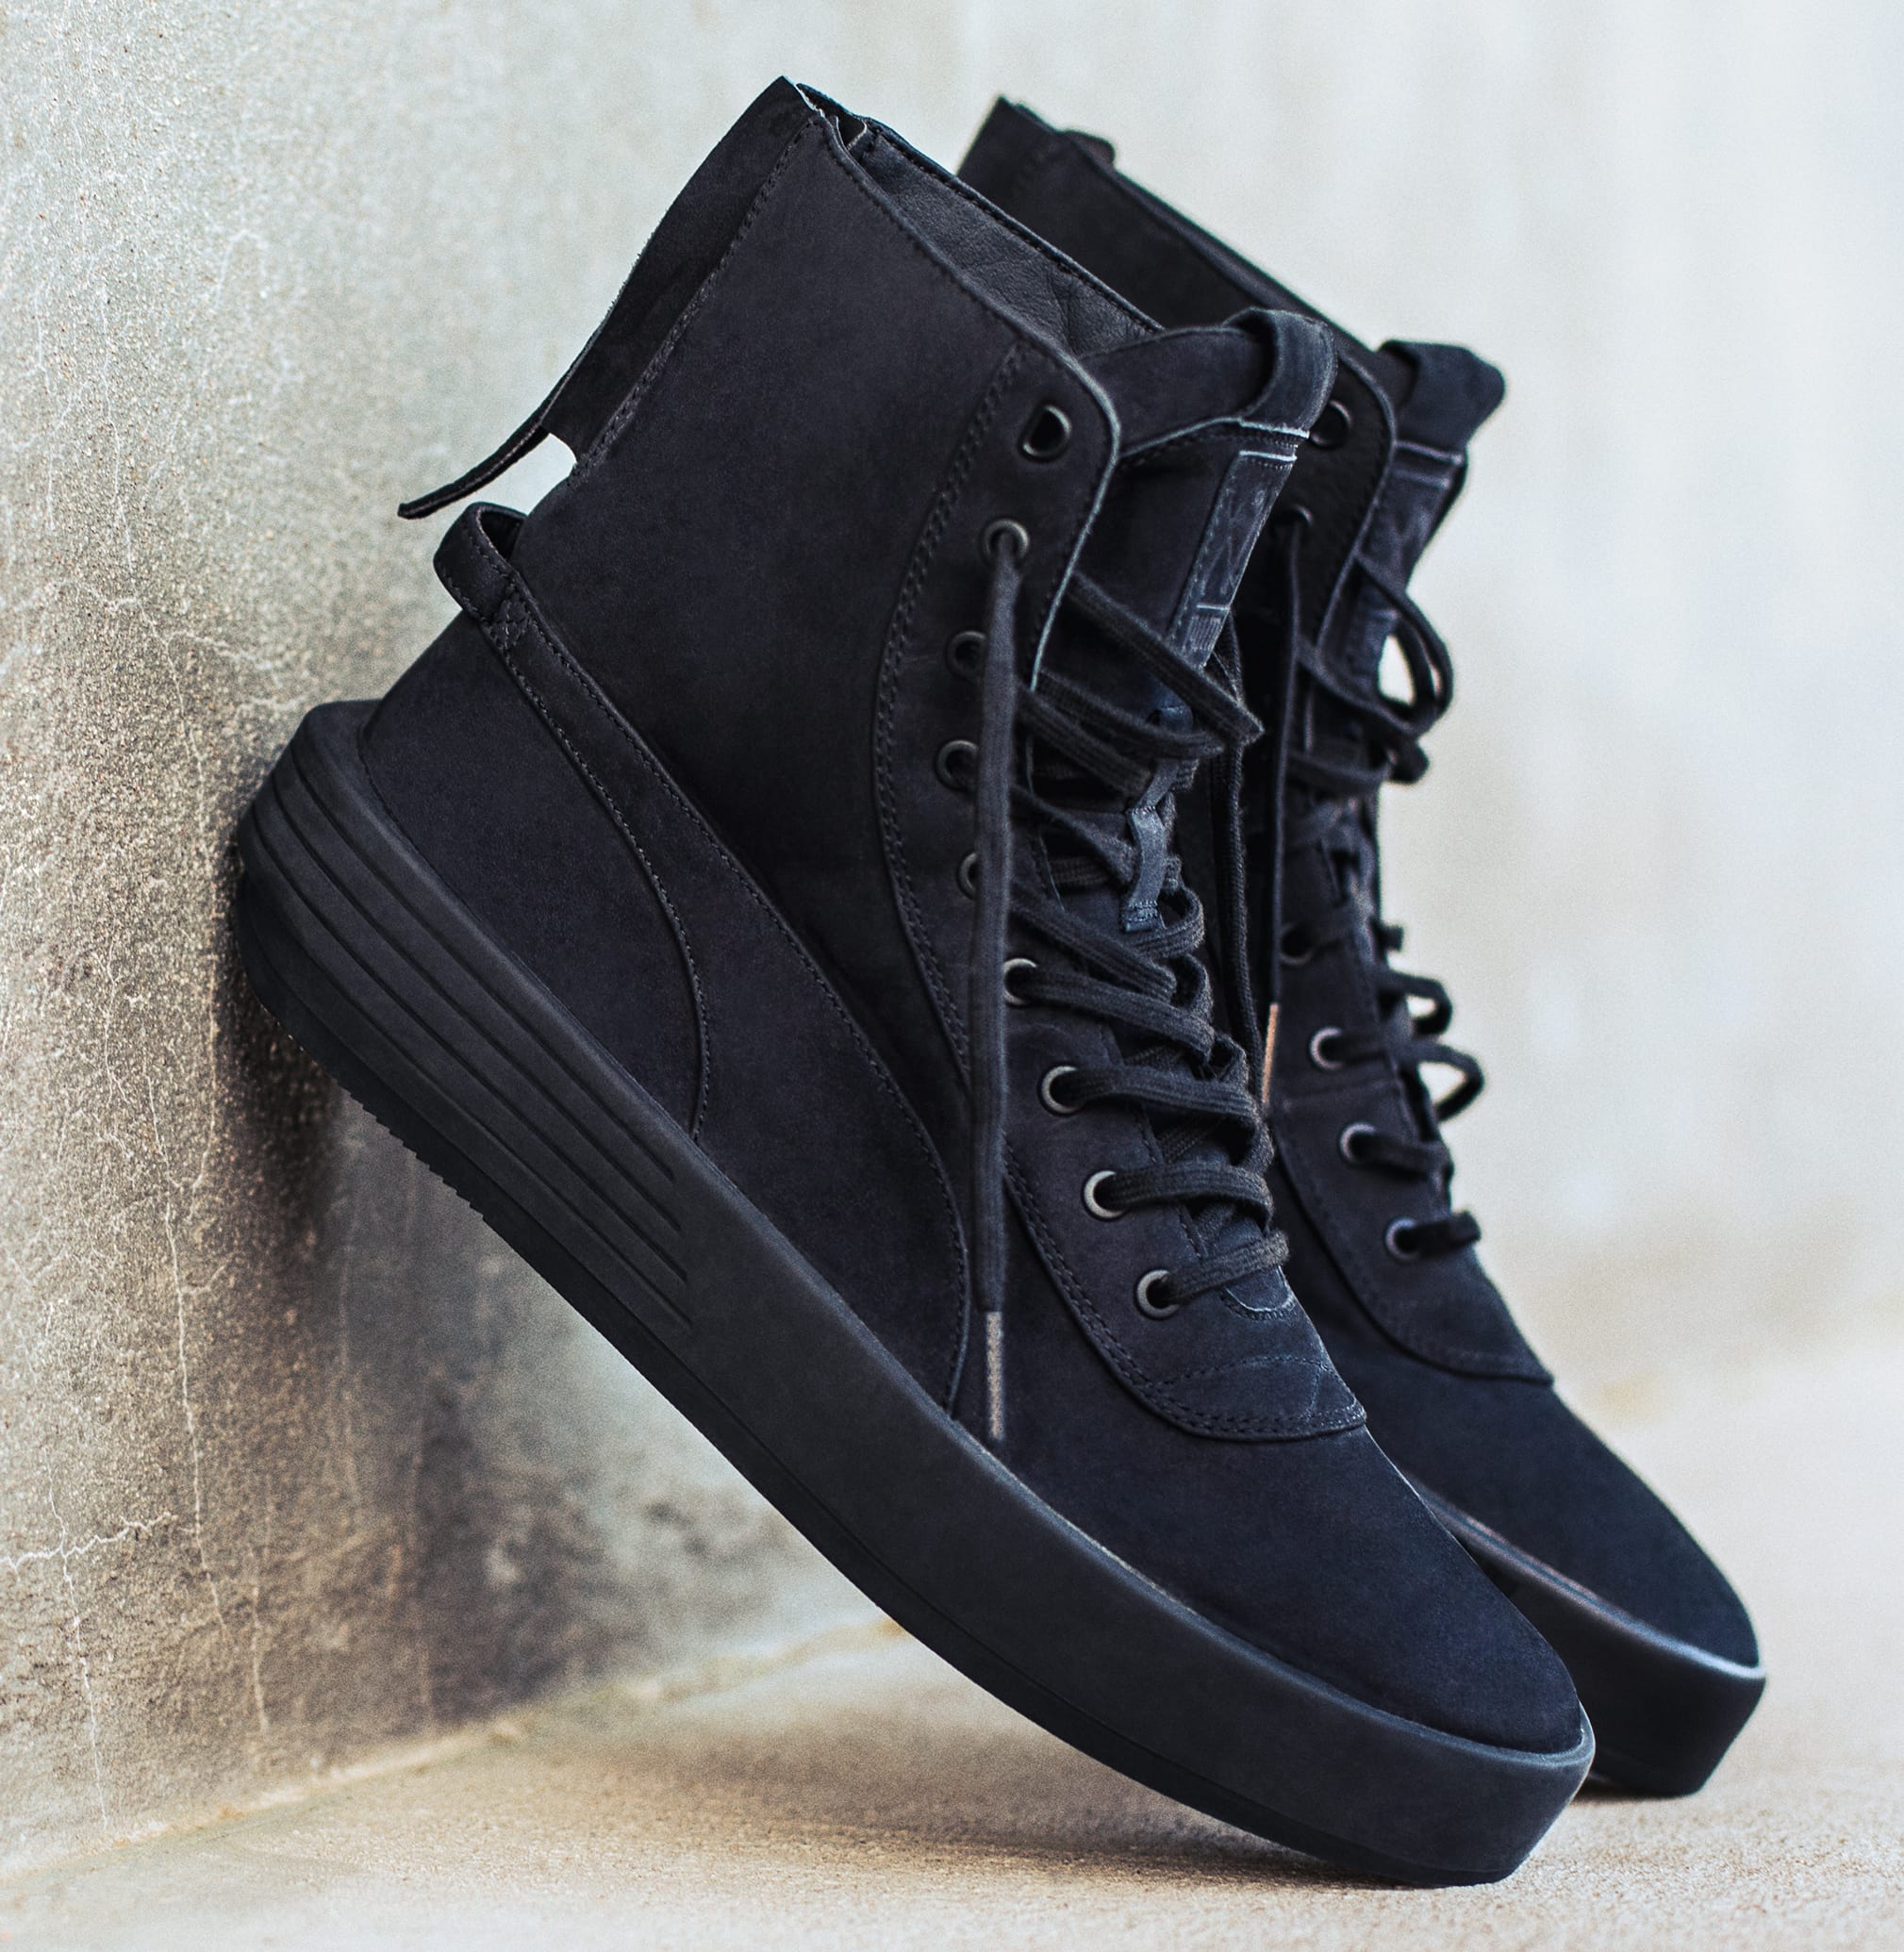 The Weeknd x Puma X XO Parallel Boot